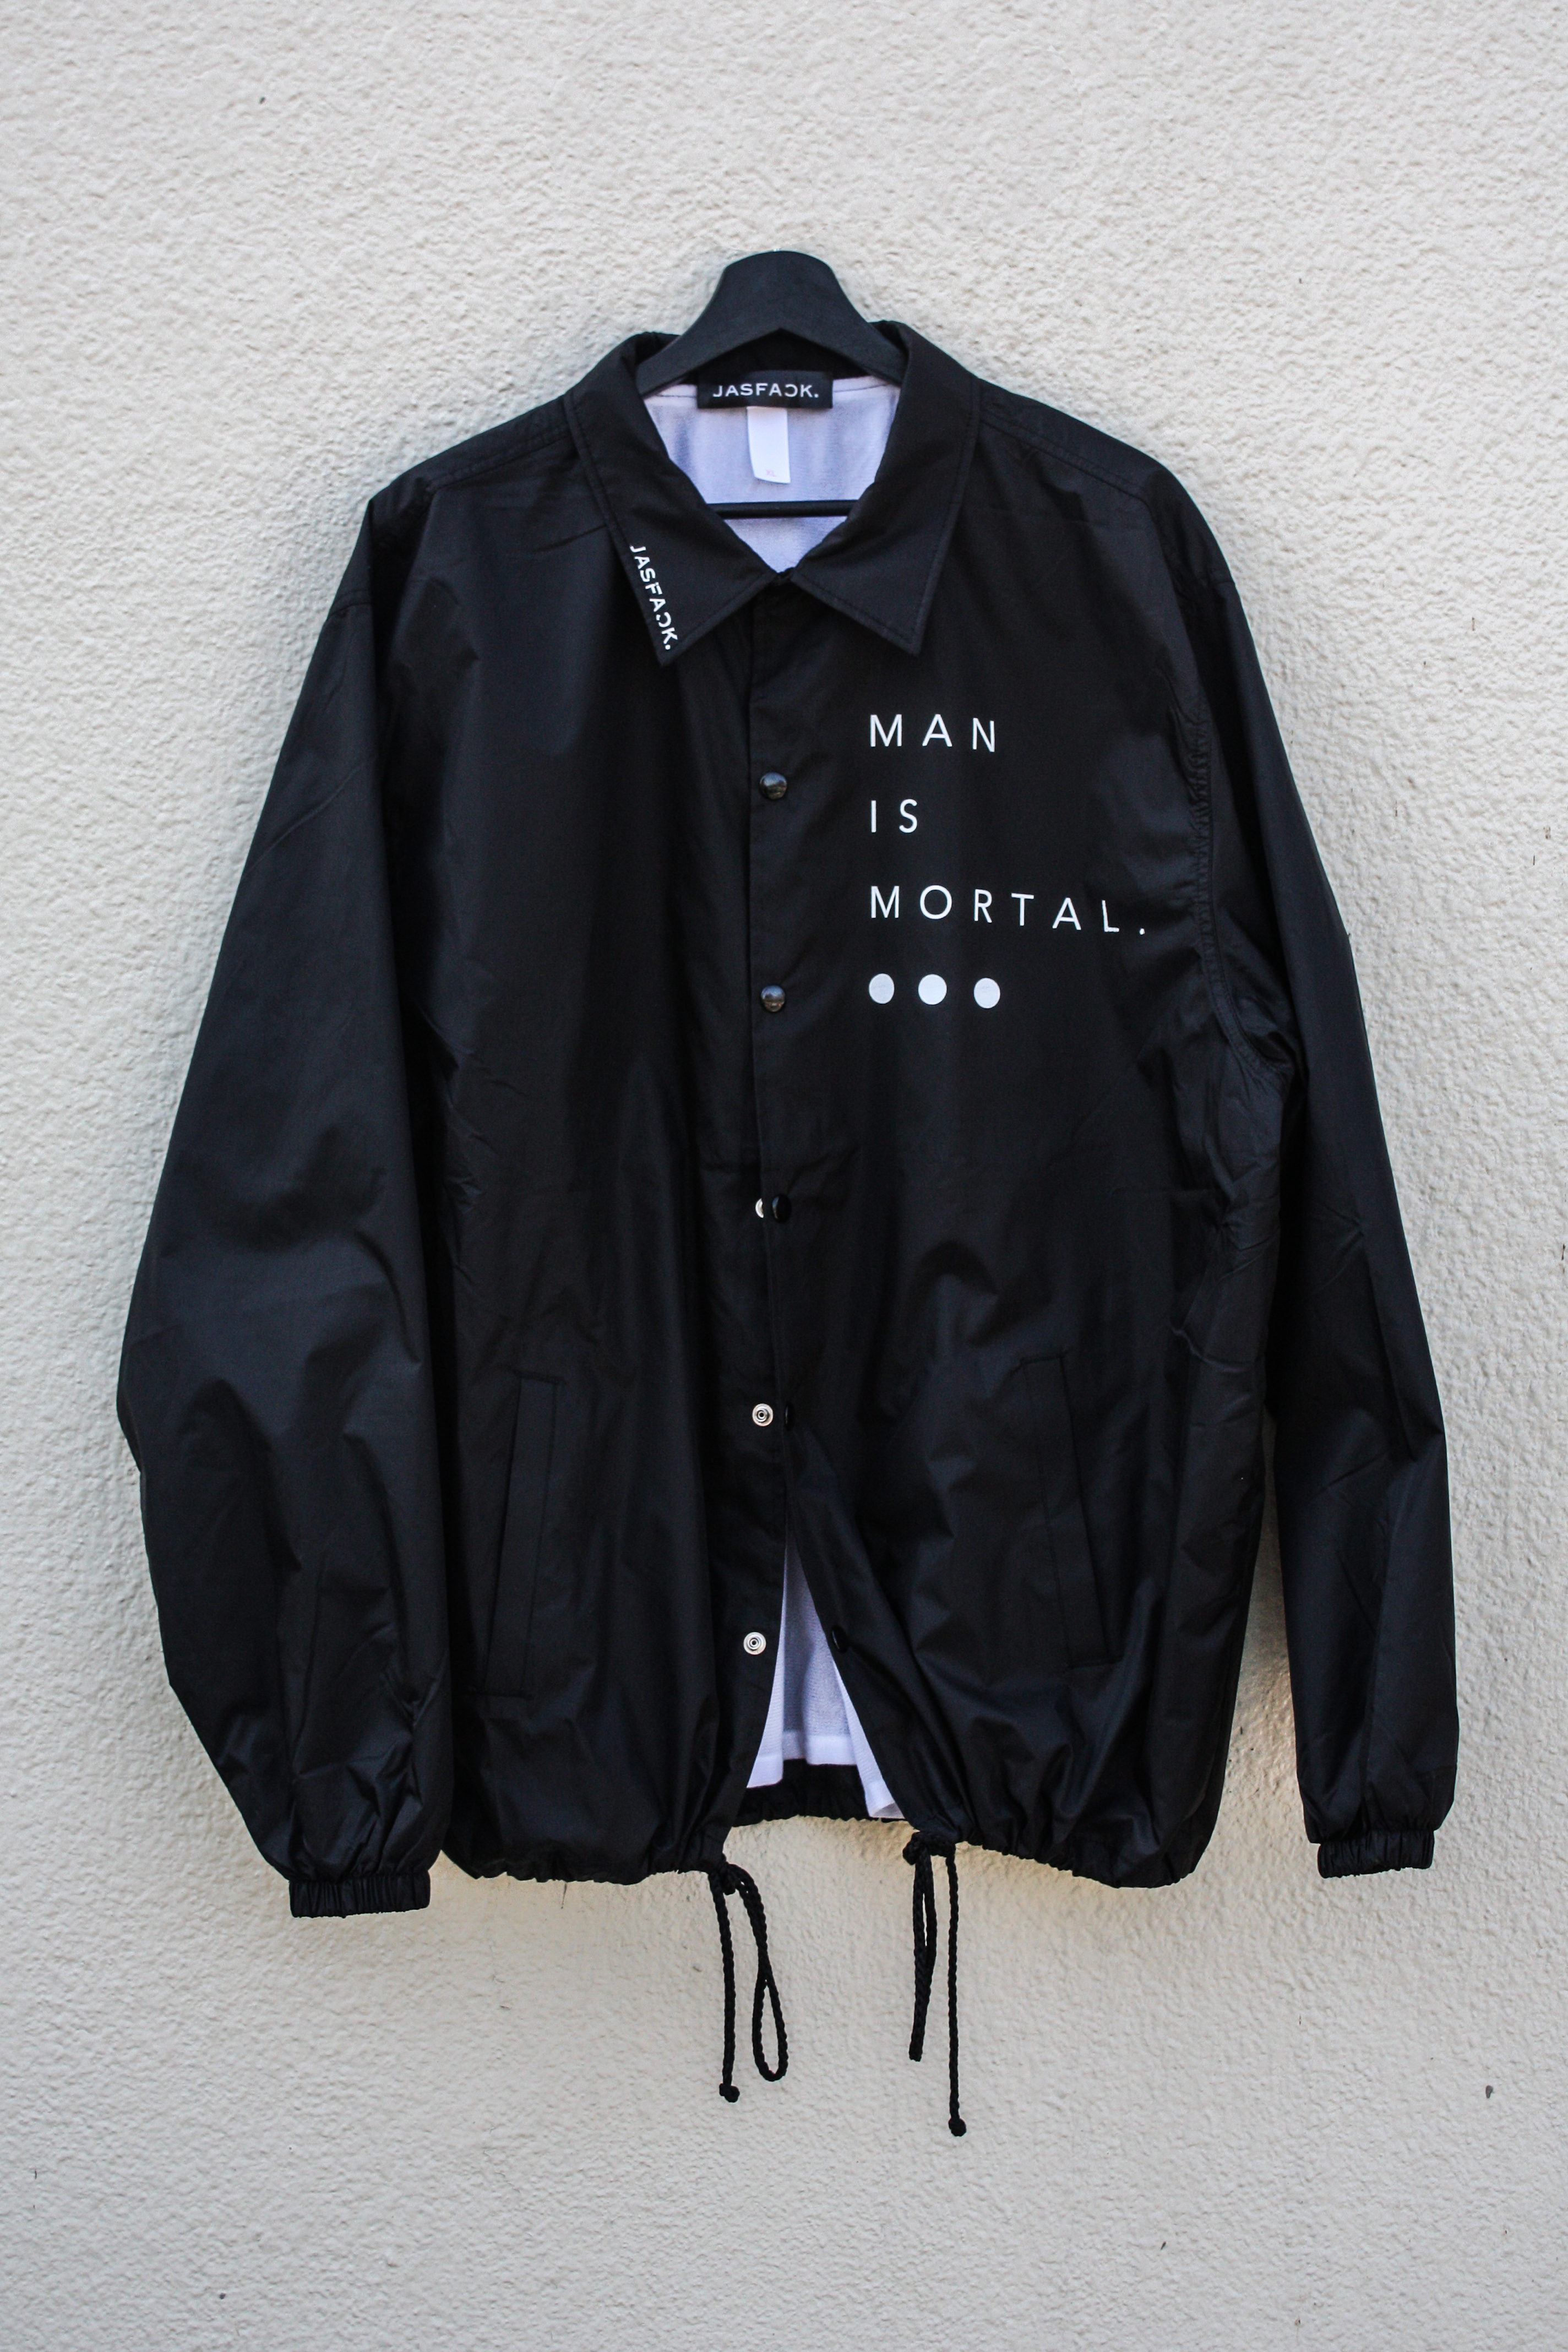 Mortal Coach Jacket (JFK-020)-front